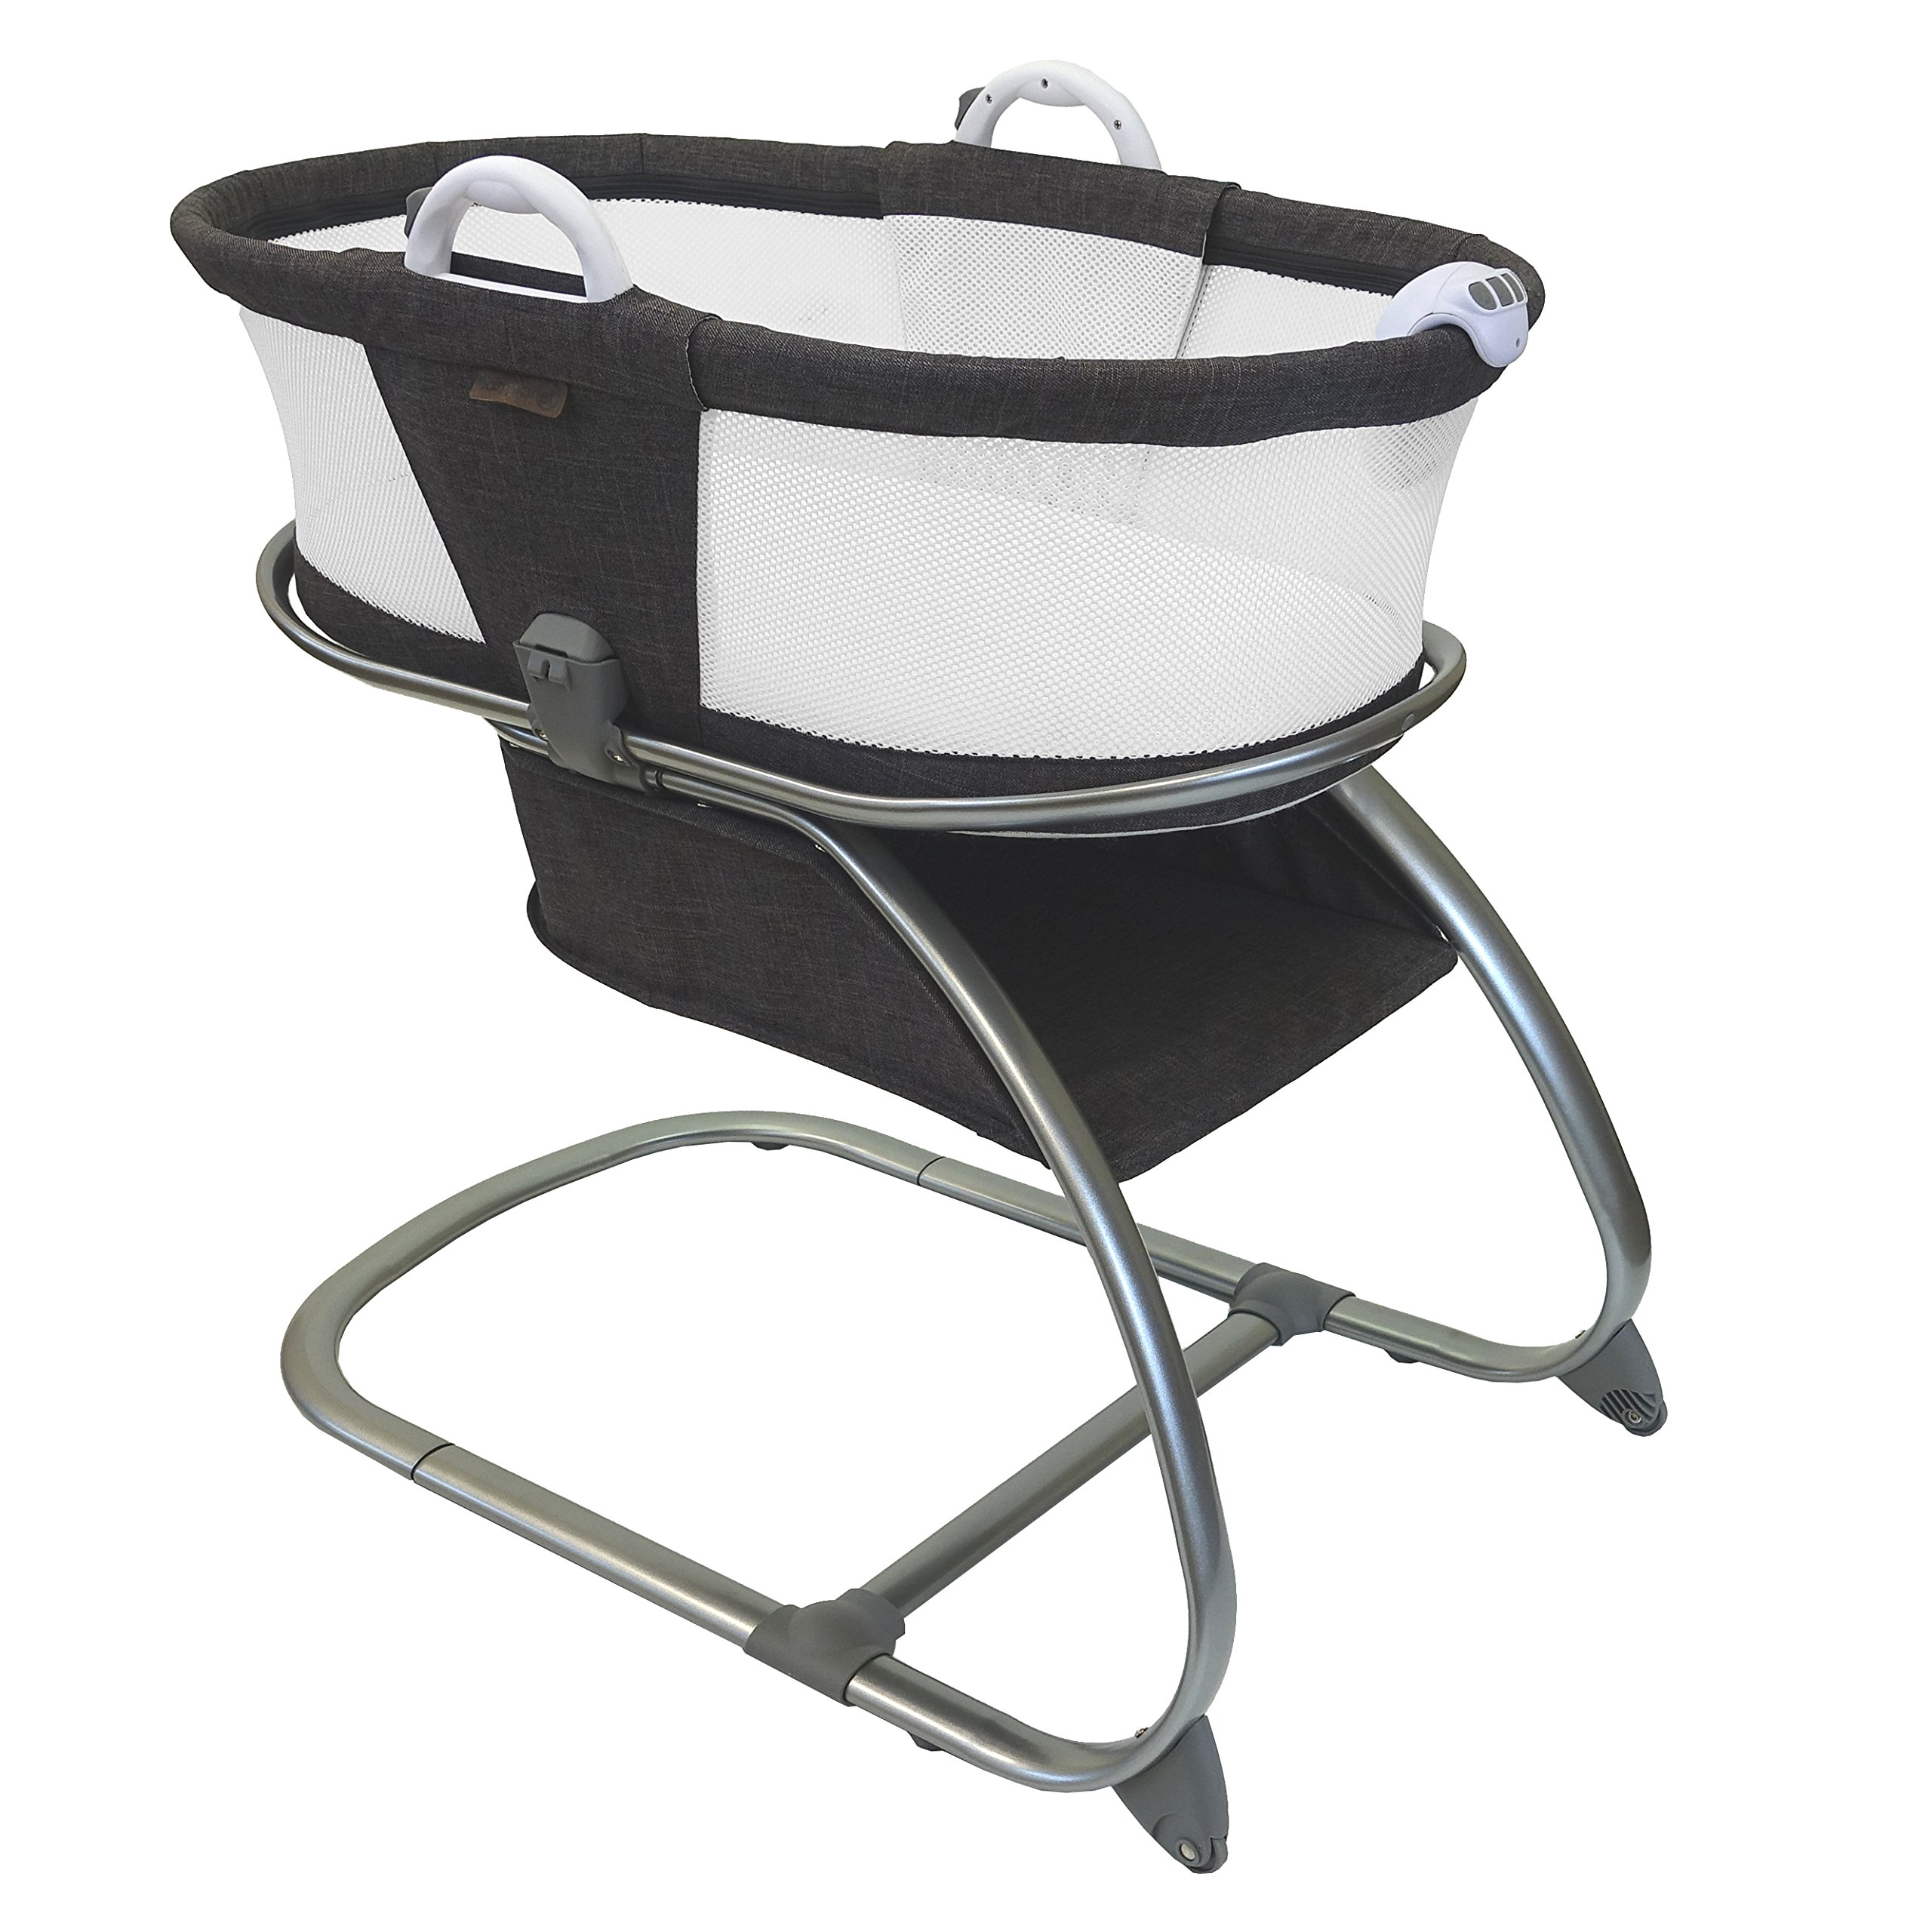 Luxe Premium Quality Baby Planet Oasis Breathable Mesh Convertible Bassinet (Graphite) by BABYPLANET